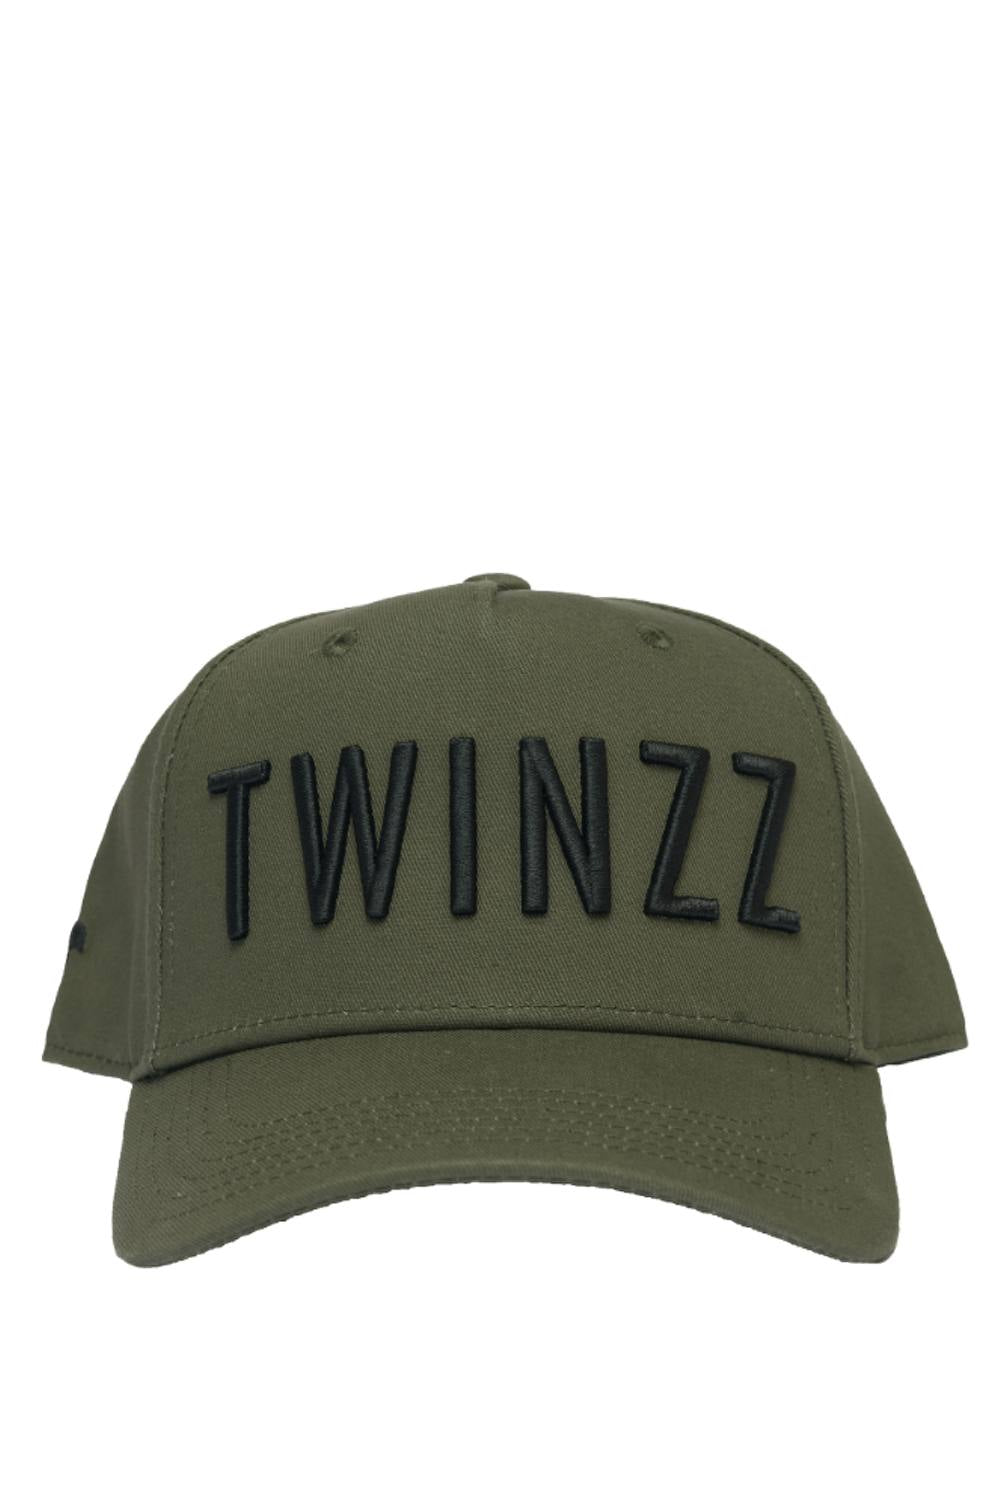 Twinzz 3D Full Trucker Cap - Khaki/Black - 1